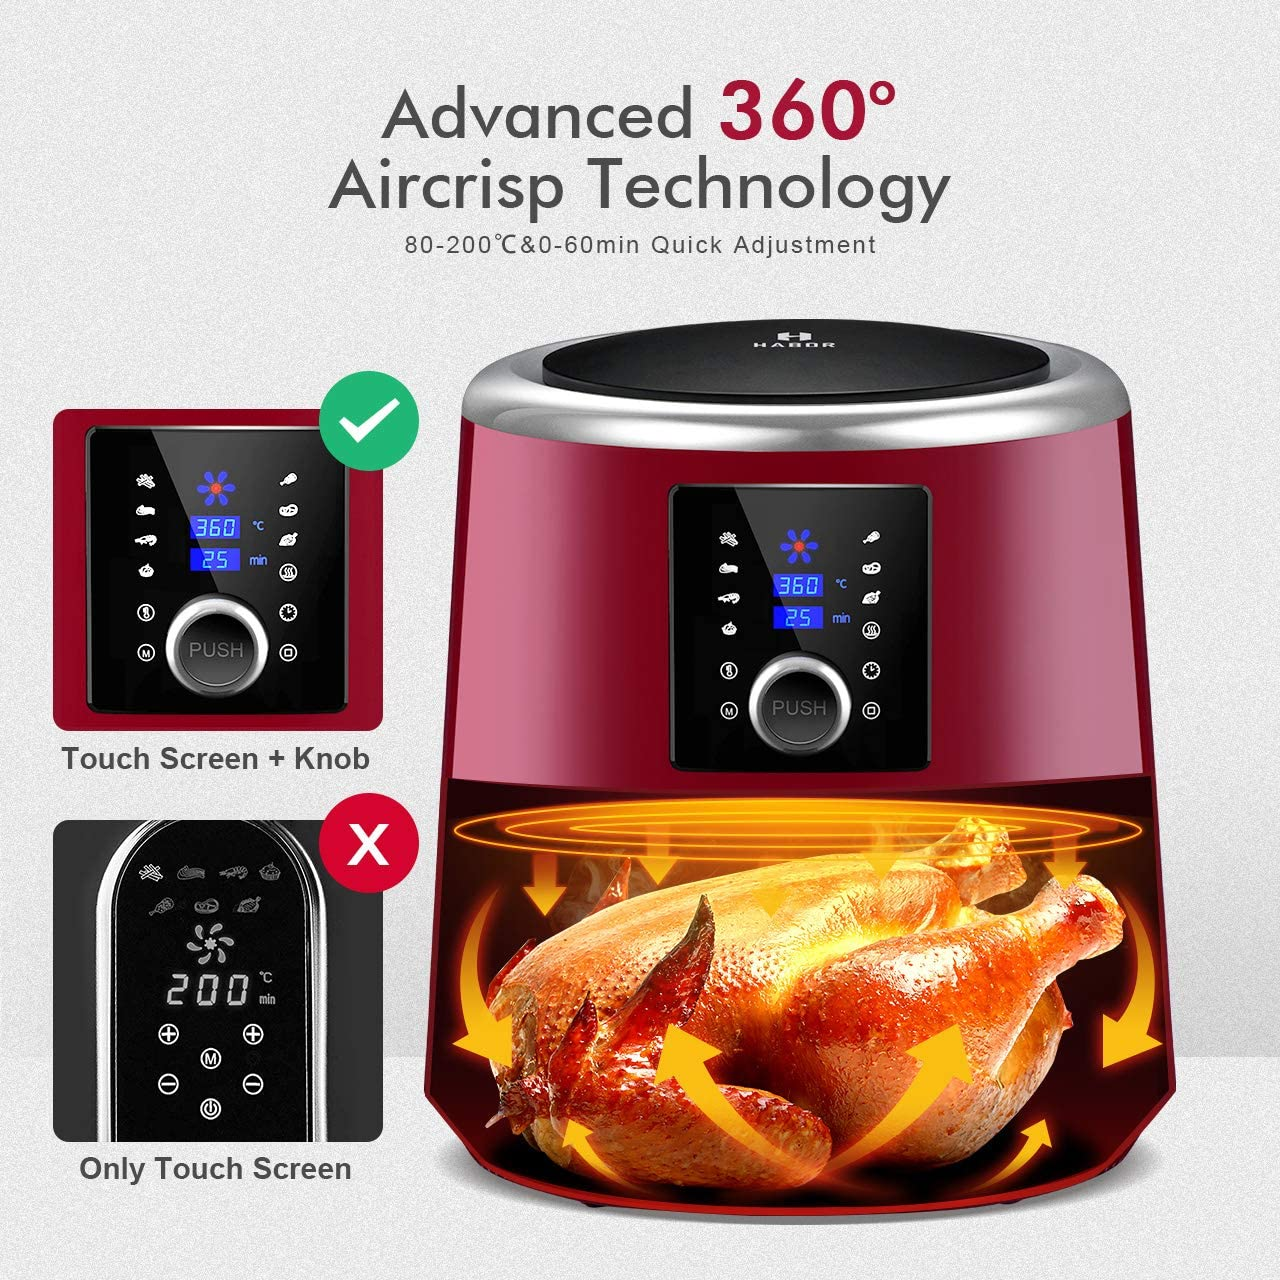 Habor Upgraded Air Fryer W Cookbook , 6QT Hot Air Fryer Oven, 8 Cooking Presets with Heat Preservation Function, Digital Touchscreen, Detachable Basket Dishwasher Safe, Chipotle Red-122AR